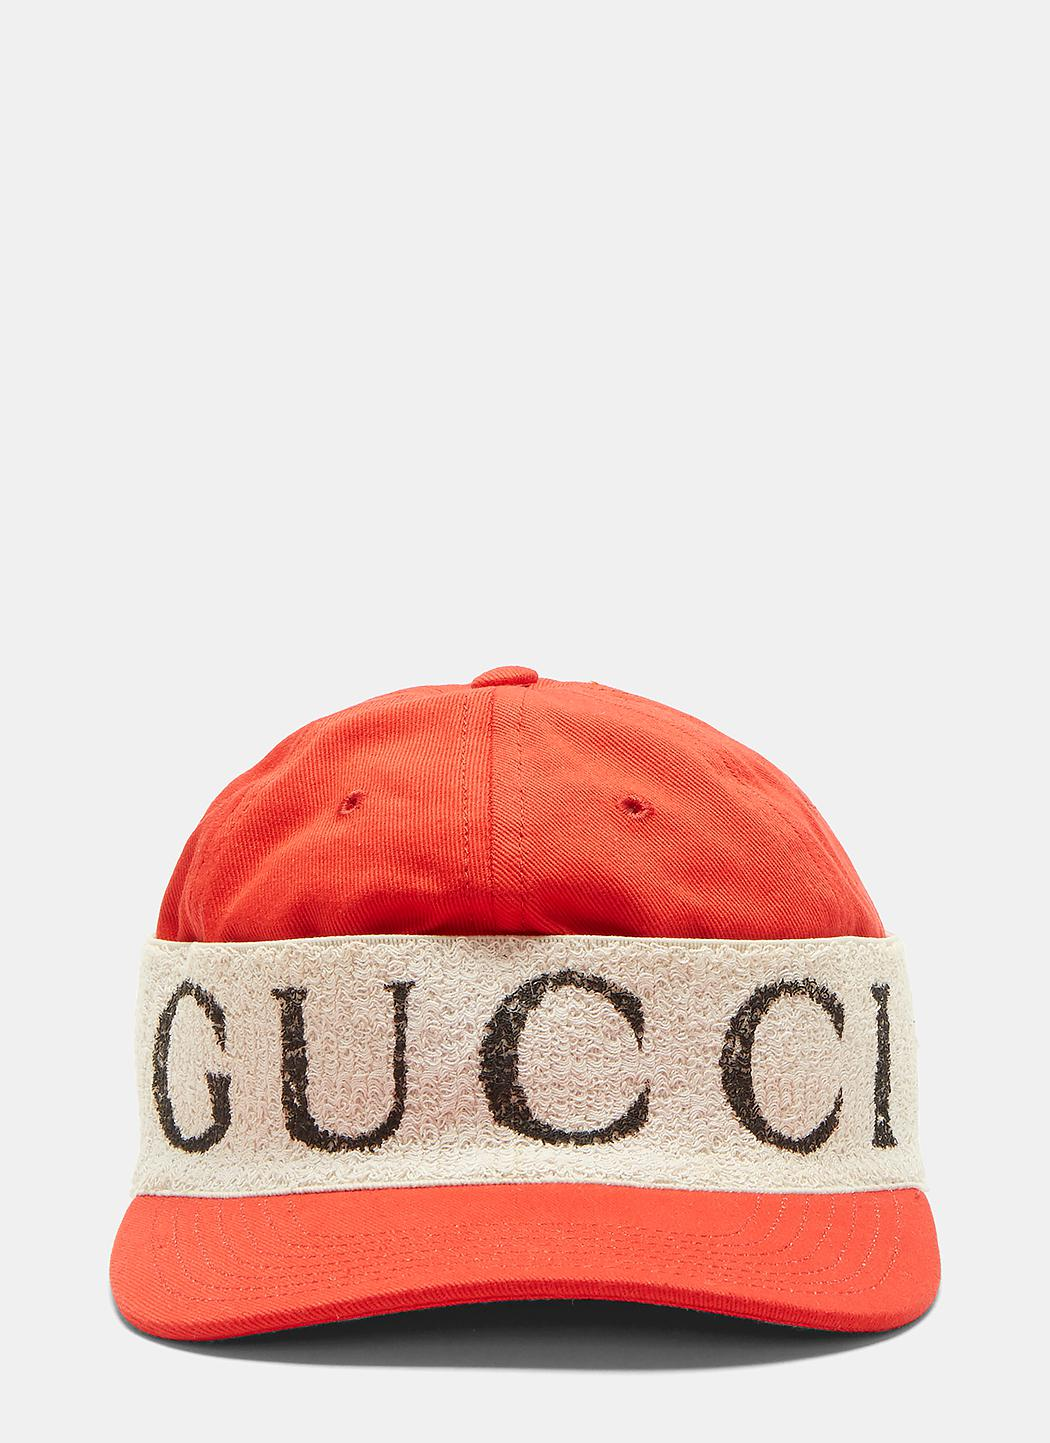 Lyst - Gucci Logo Band Baseball Cap In Red in Red for Men 5e6f5f174bd